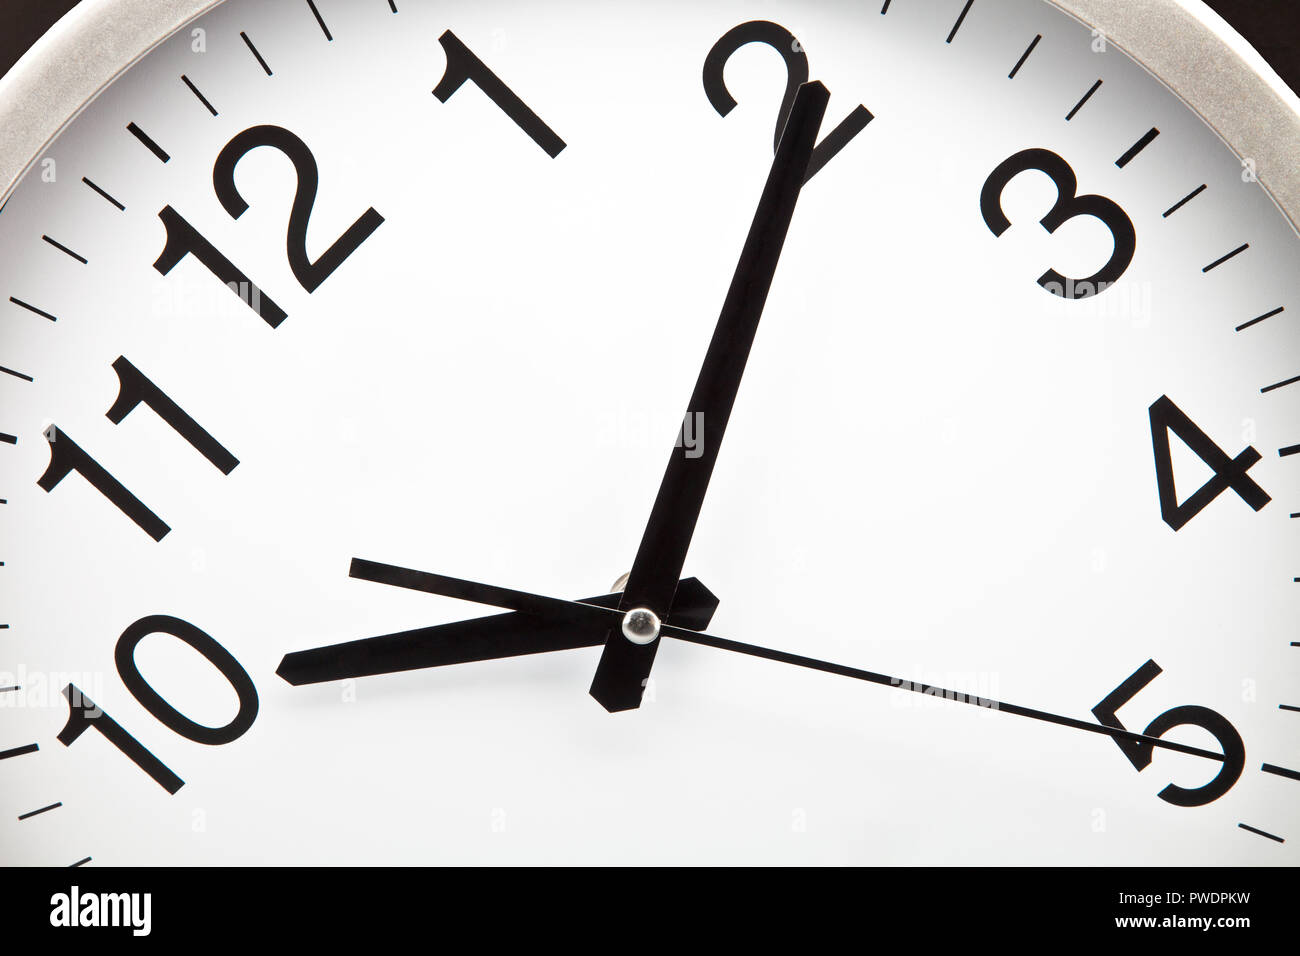 Clock with white background and black needles - Stock Image